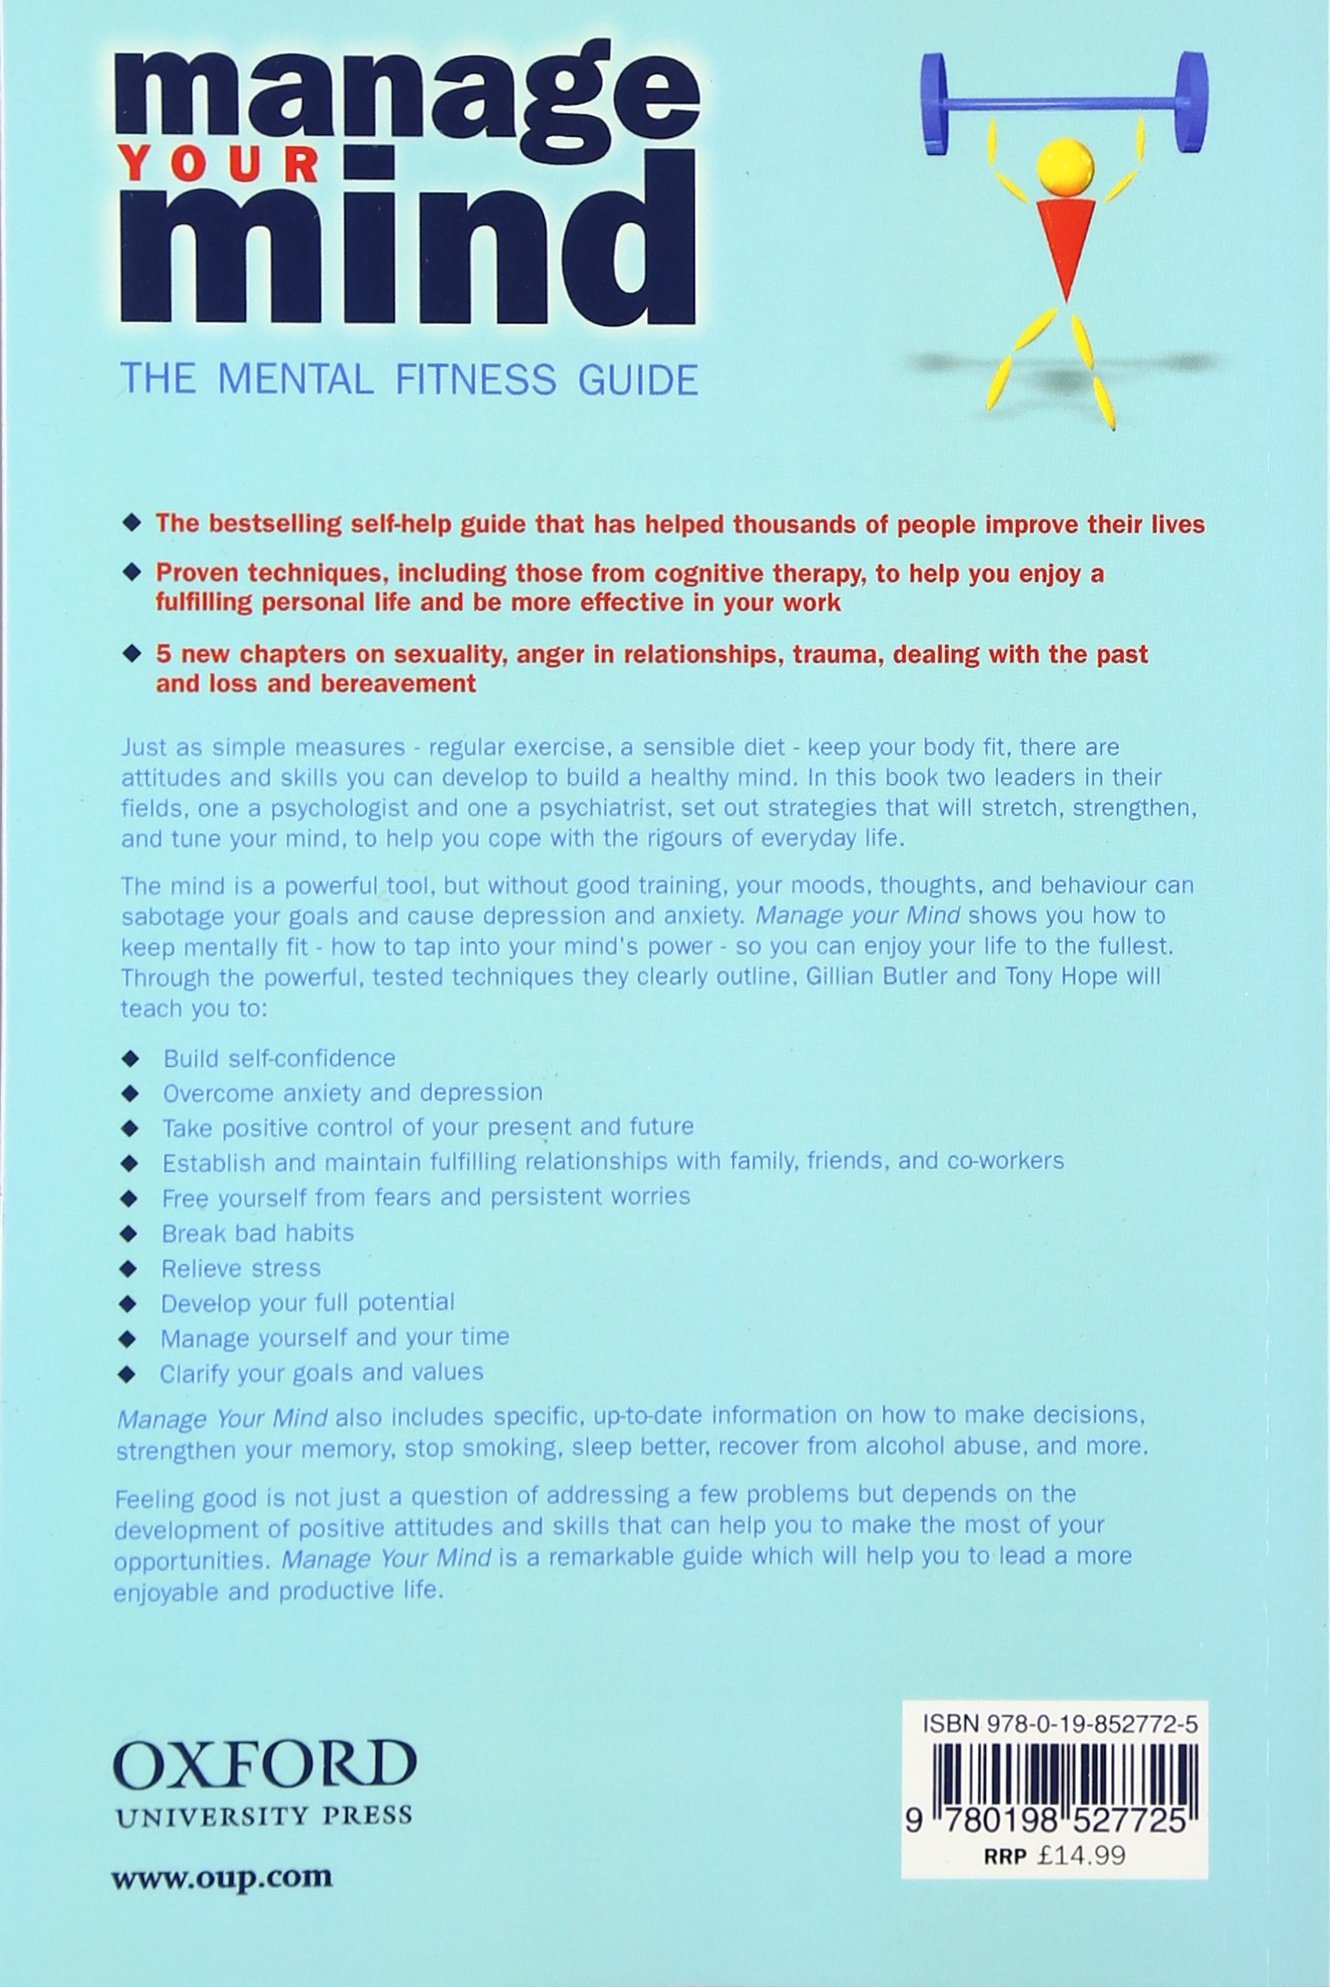 Manage Your Mind The Mental Fitness Guide Amazoncouk Gillian Butler Tony Hope 9780198527725 Books